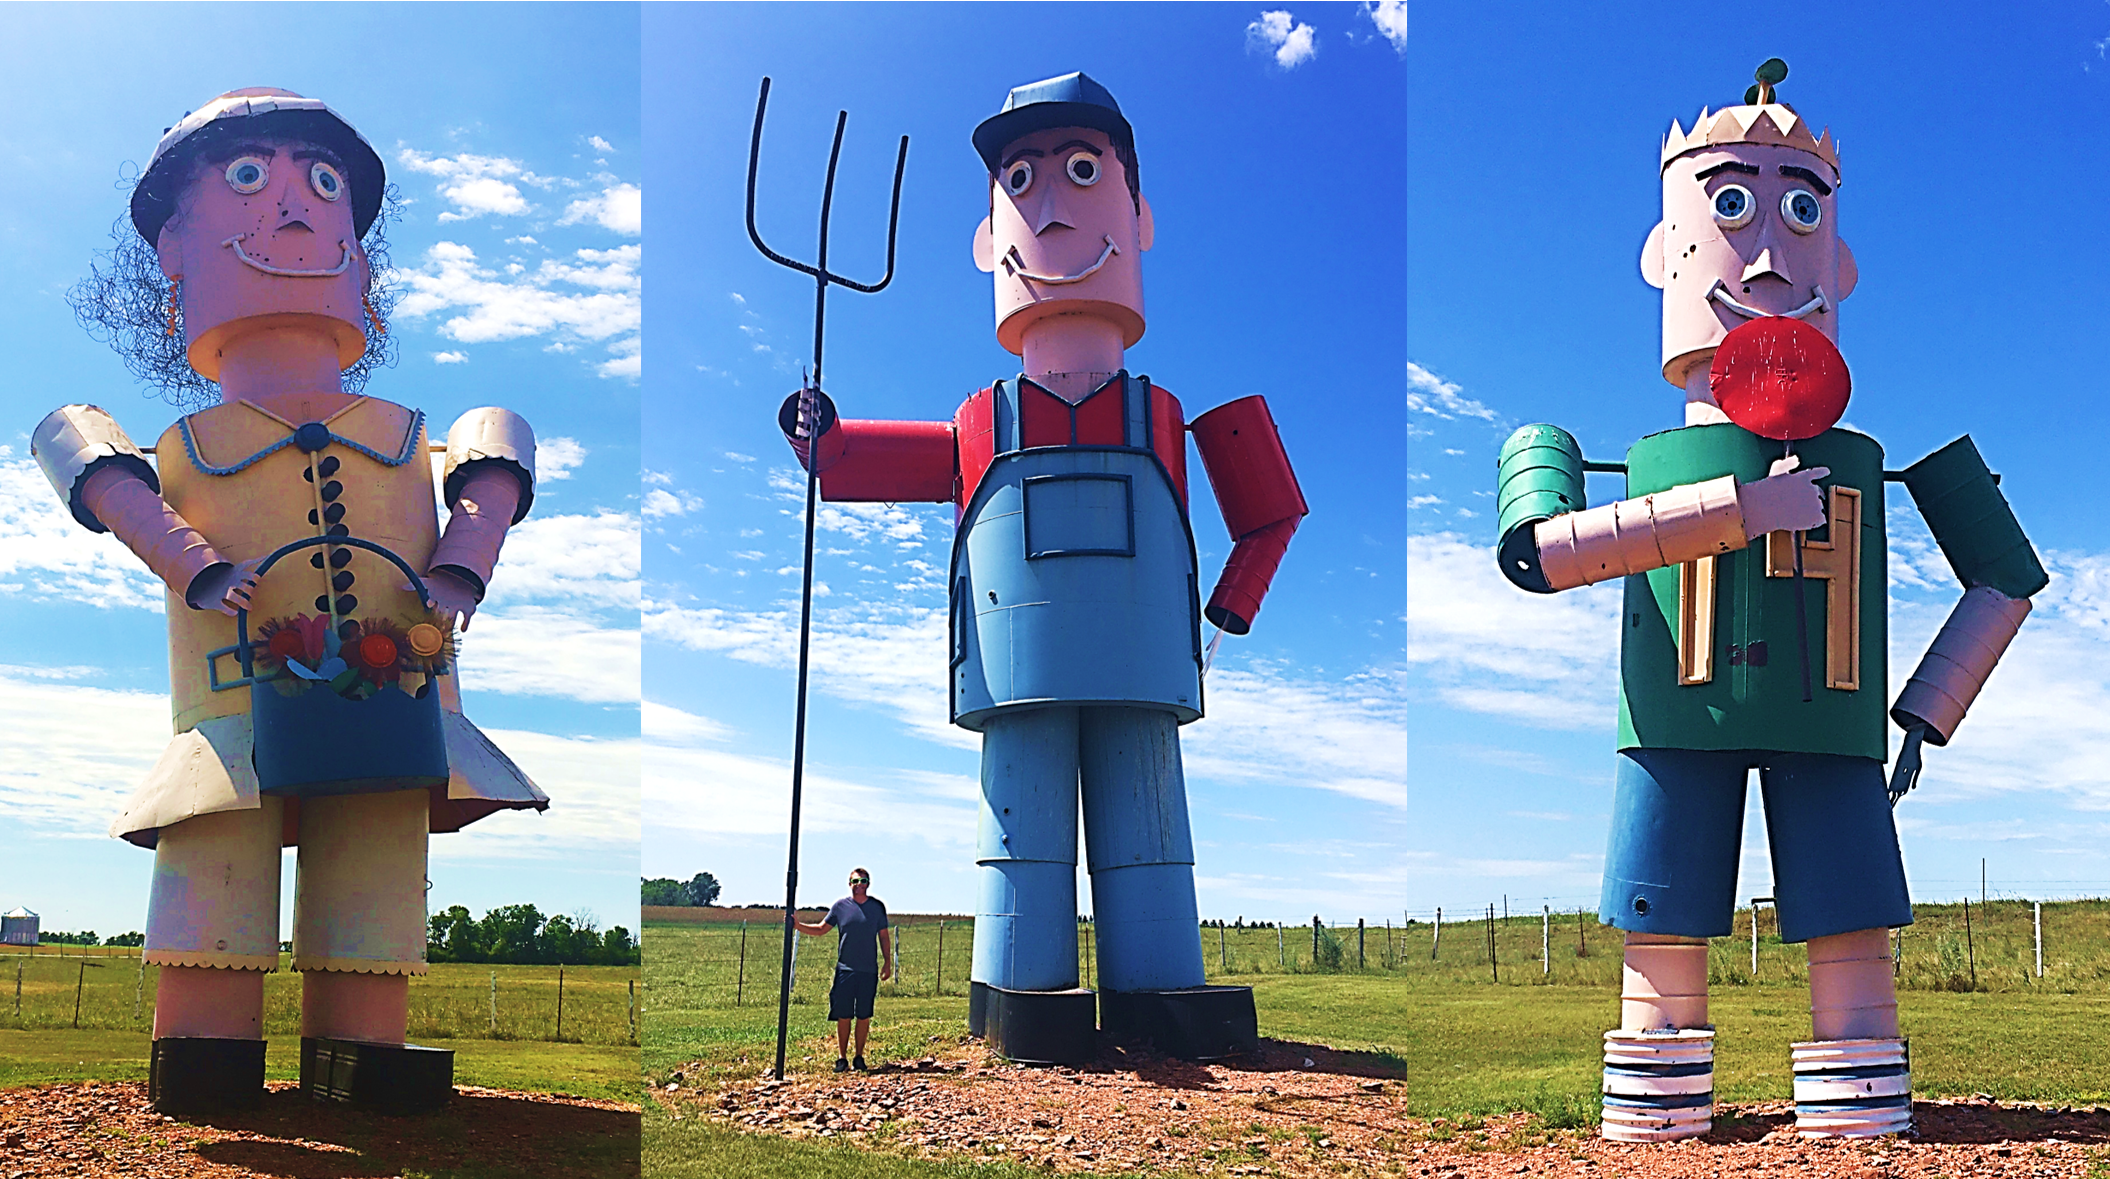 tin family enchanted highway